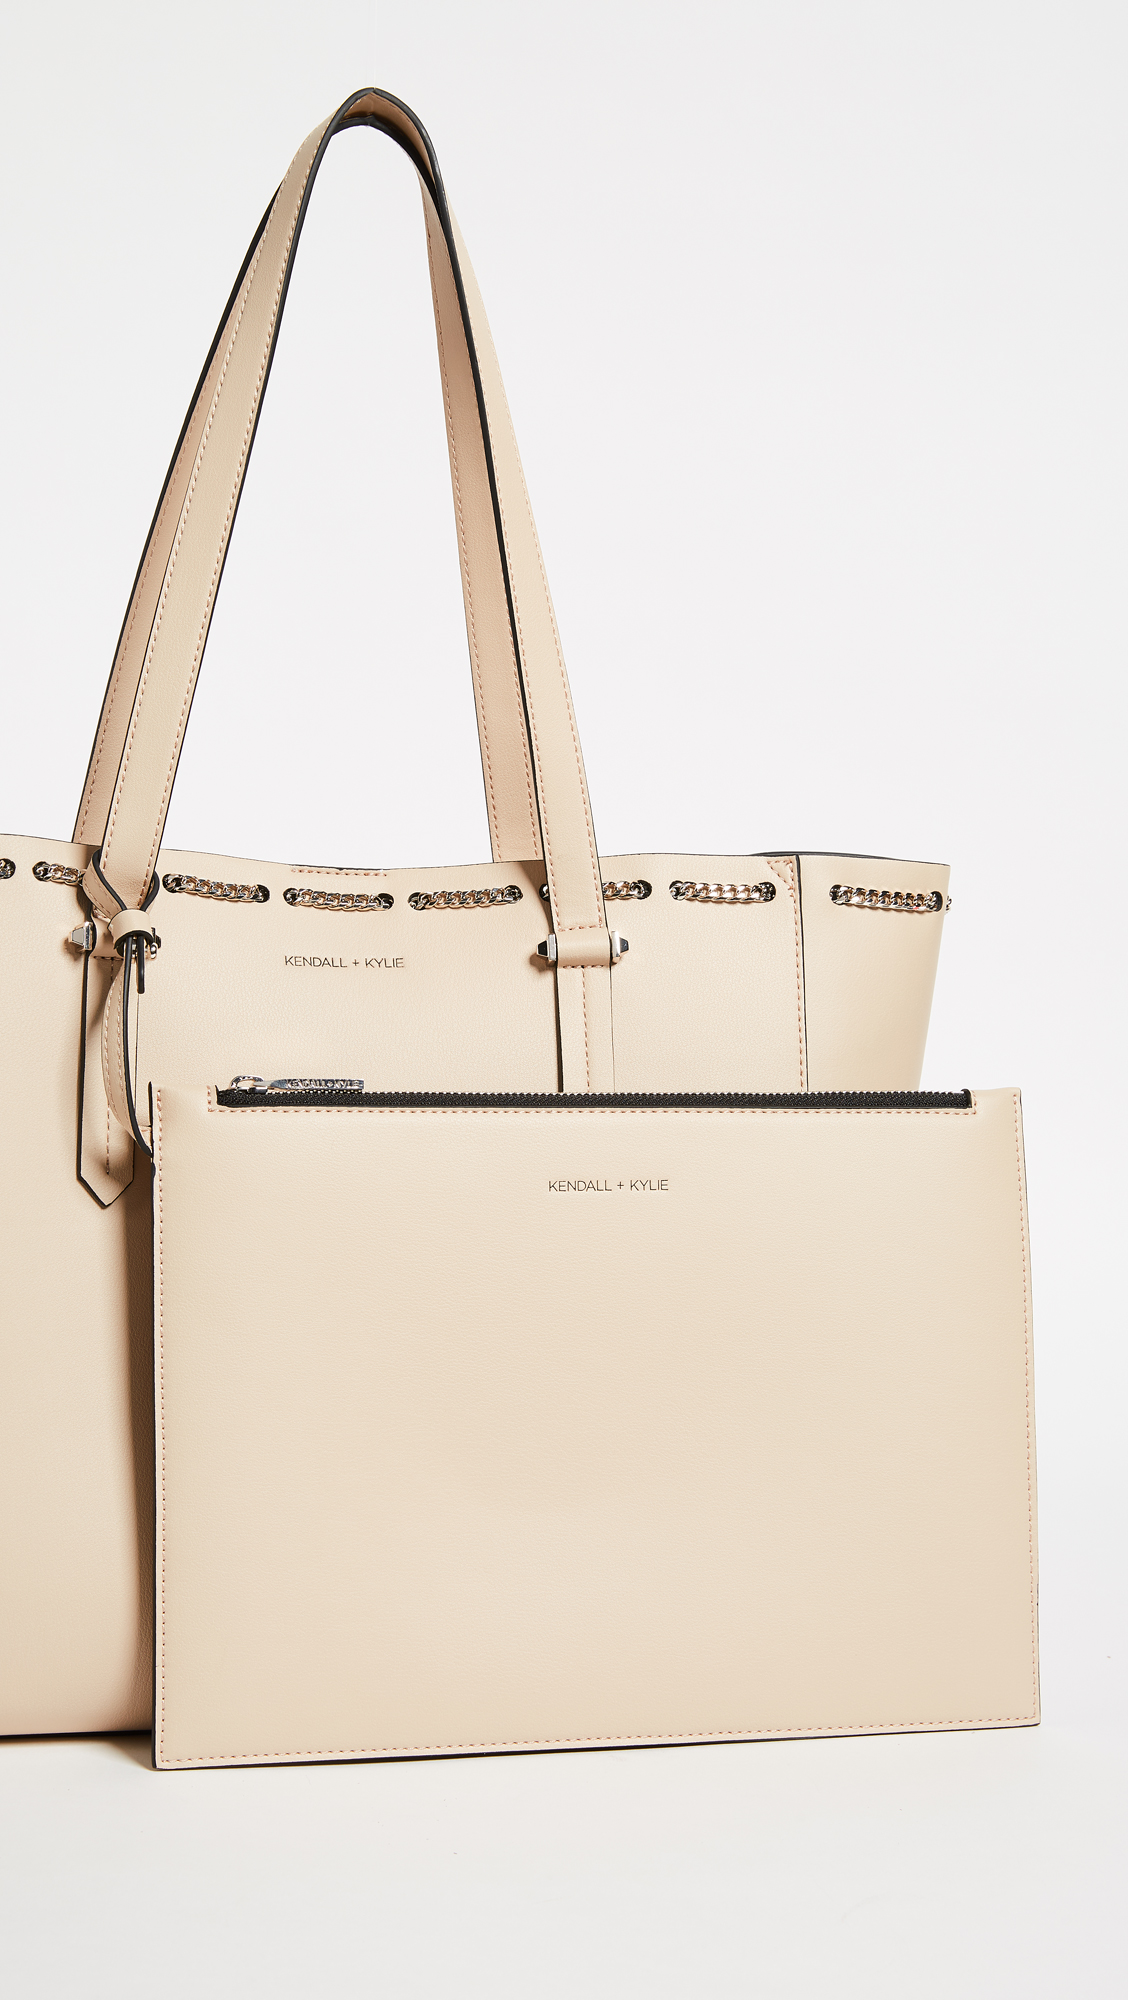 15454d1b314a0 KENDALL + KYLIE Izzy Tote   SHOPBOP